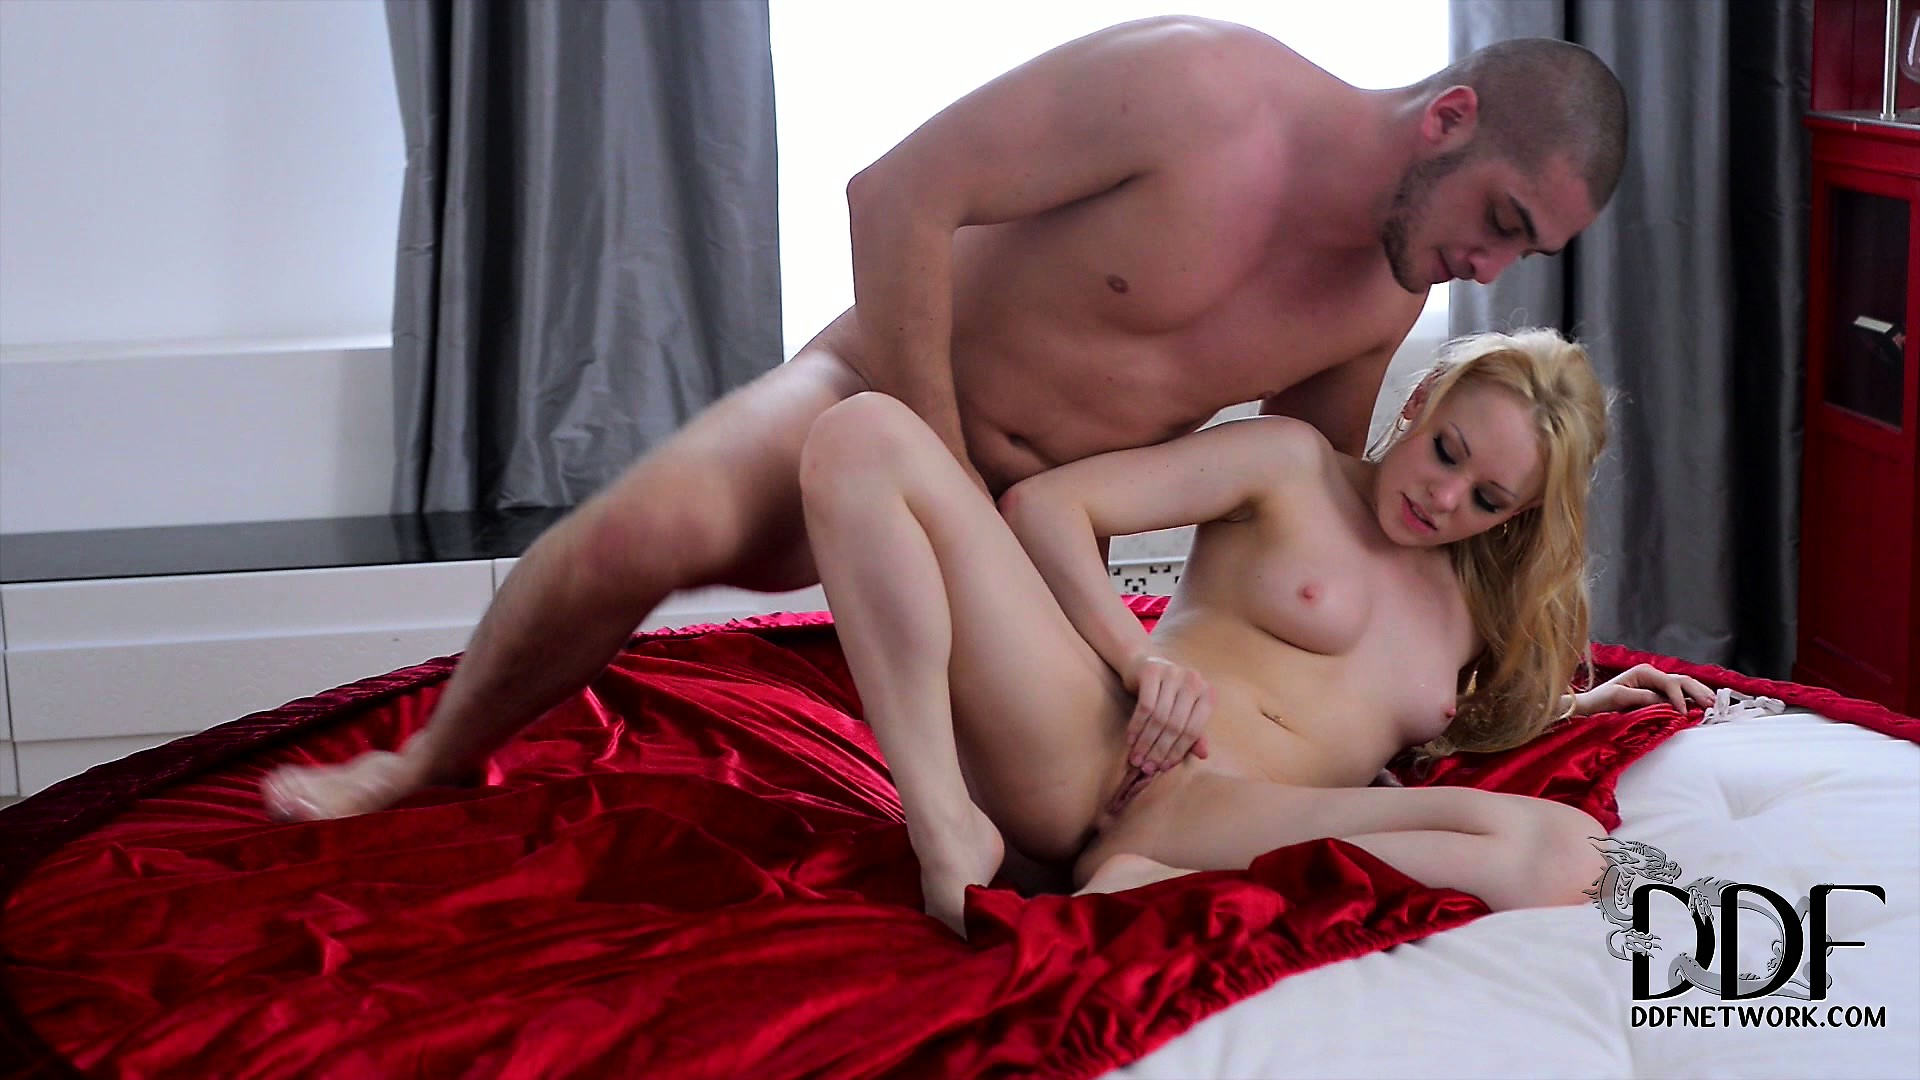 Porno Video of Petite Blonde Cute Gets A Mouthful Of Cum From Her Lover's Cock